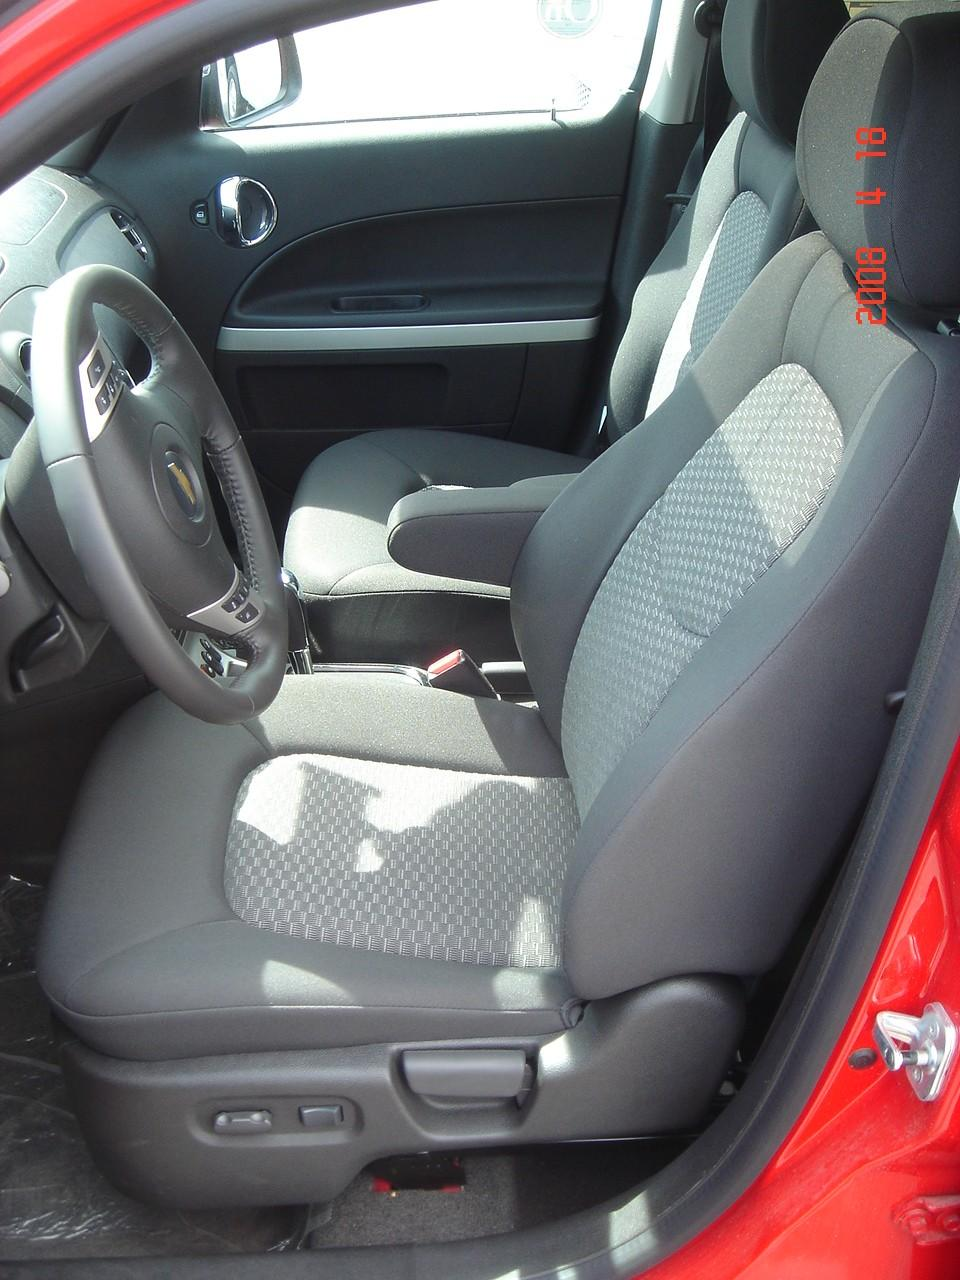 2006 2010 chevy hhr front bucket seats with manual controls rh durafitcovers com 2010 chevy hhr service manual 2010 chevy hhr repair manual